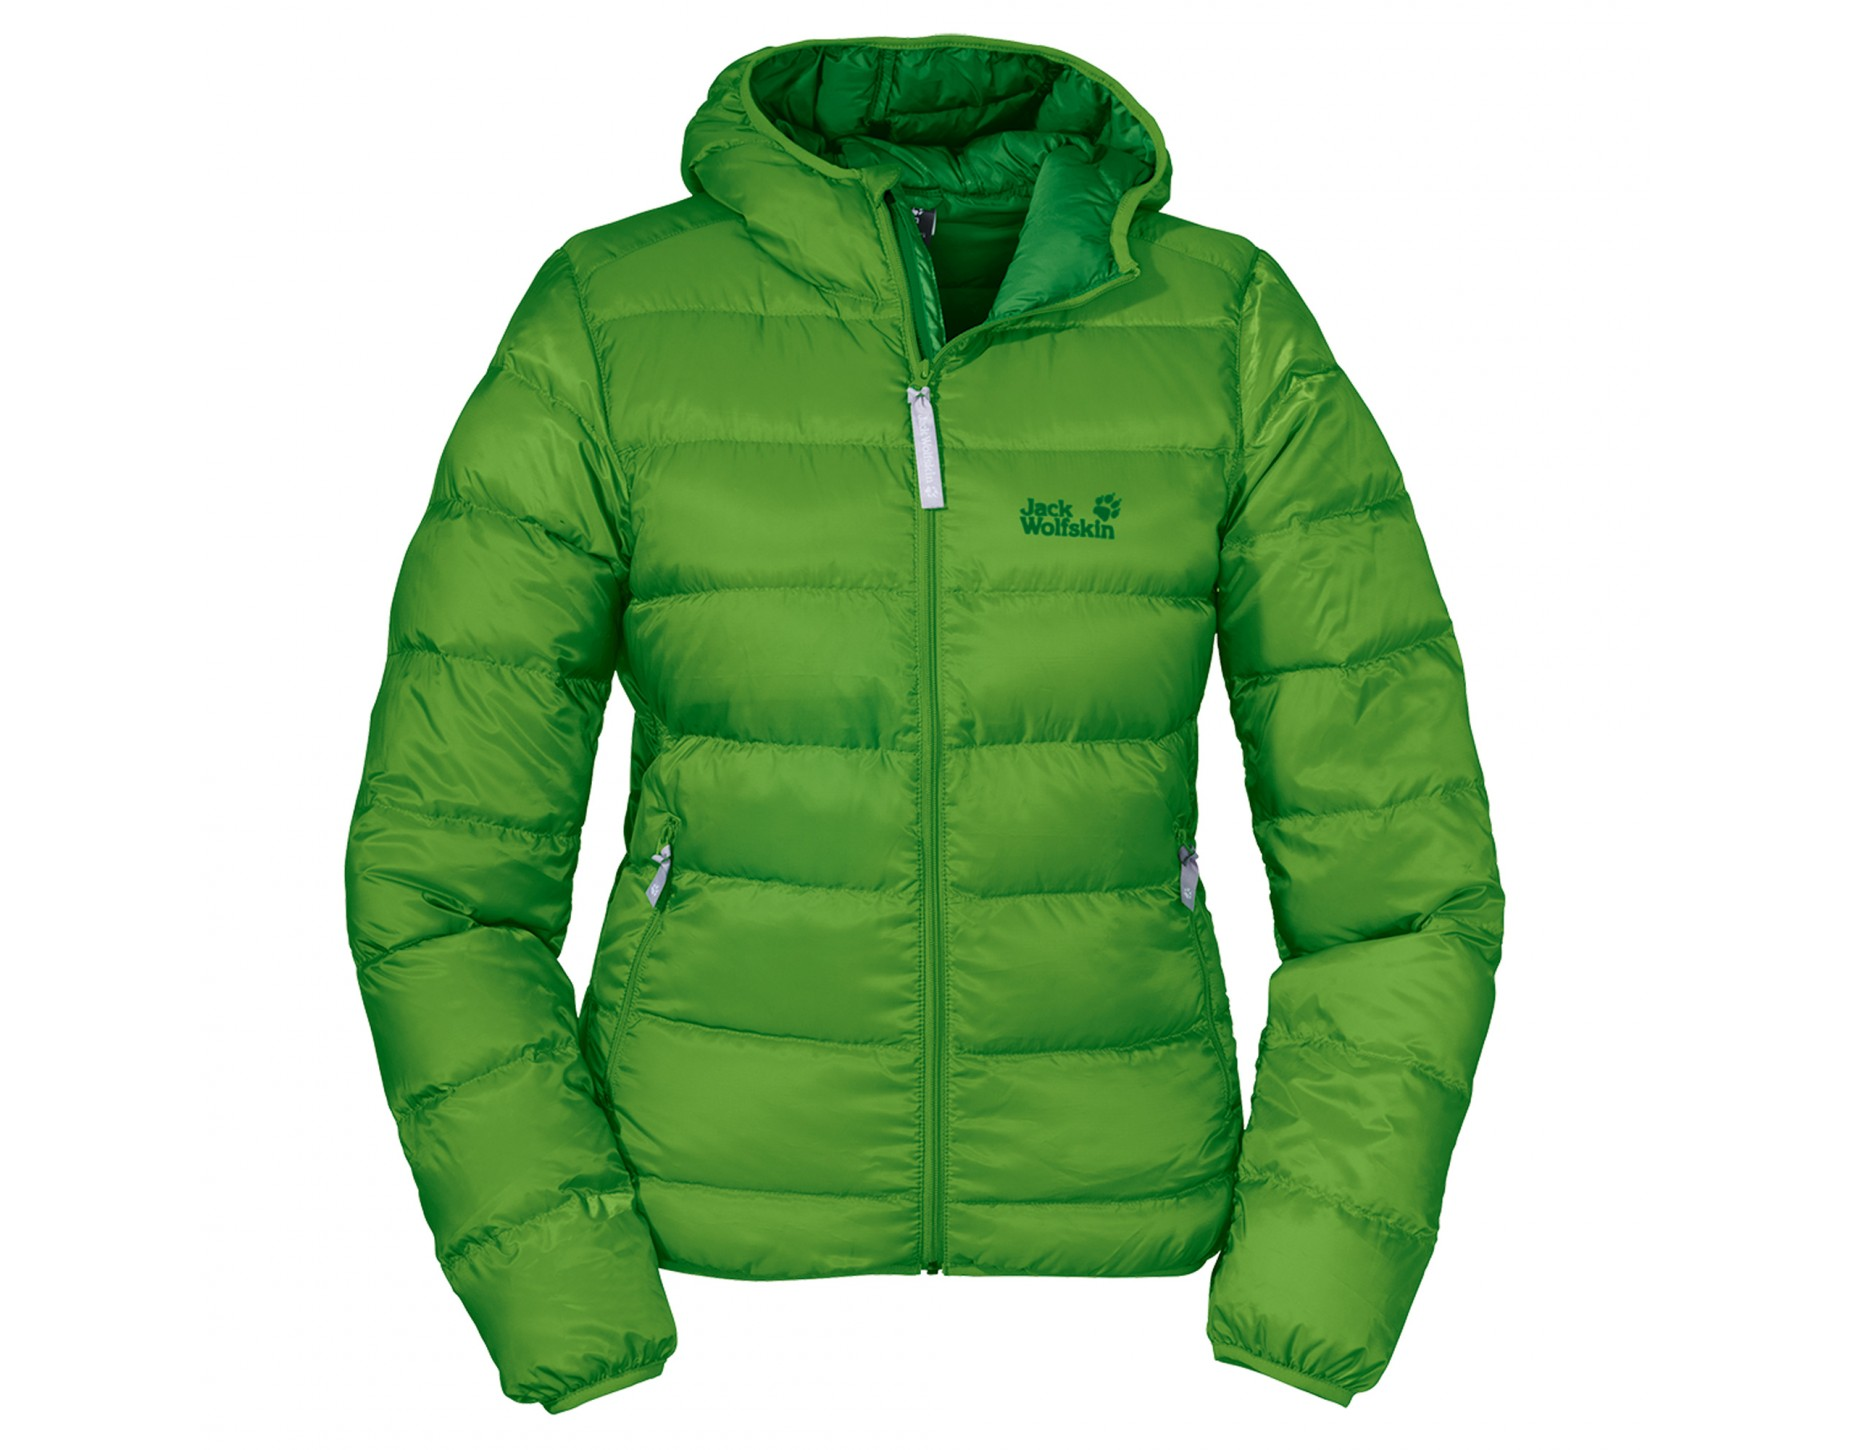 Jack Wolfskin HELIUM DOWN JACKET WOMEN – everything you need ...